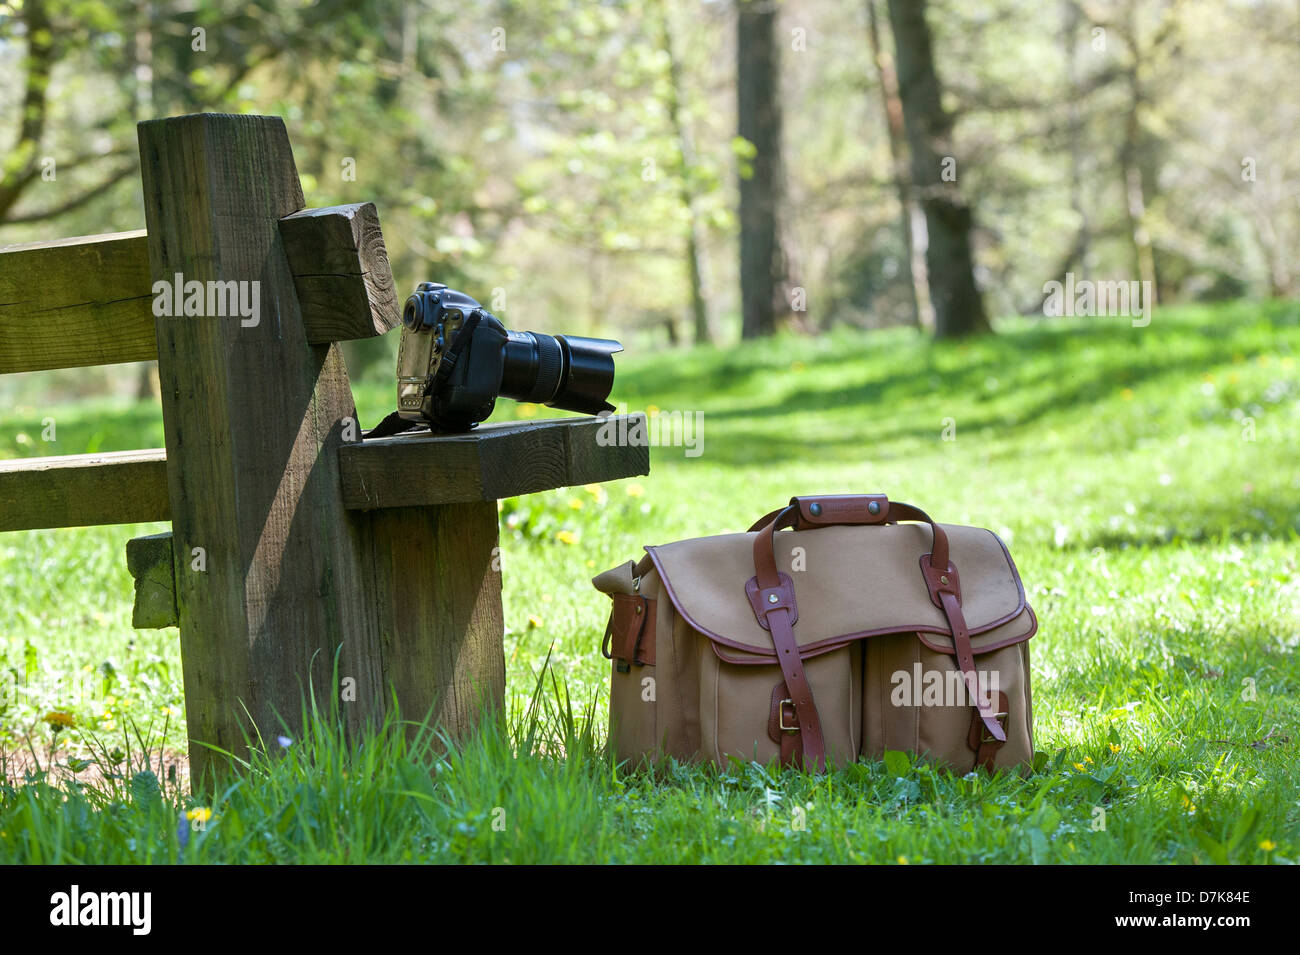 Nikon Camera equipment and bag on a seat in an English woodland - Stock Image